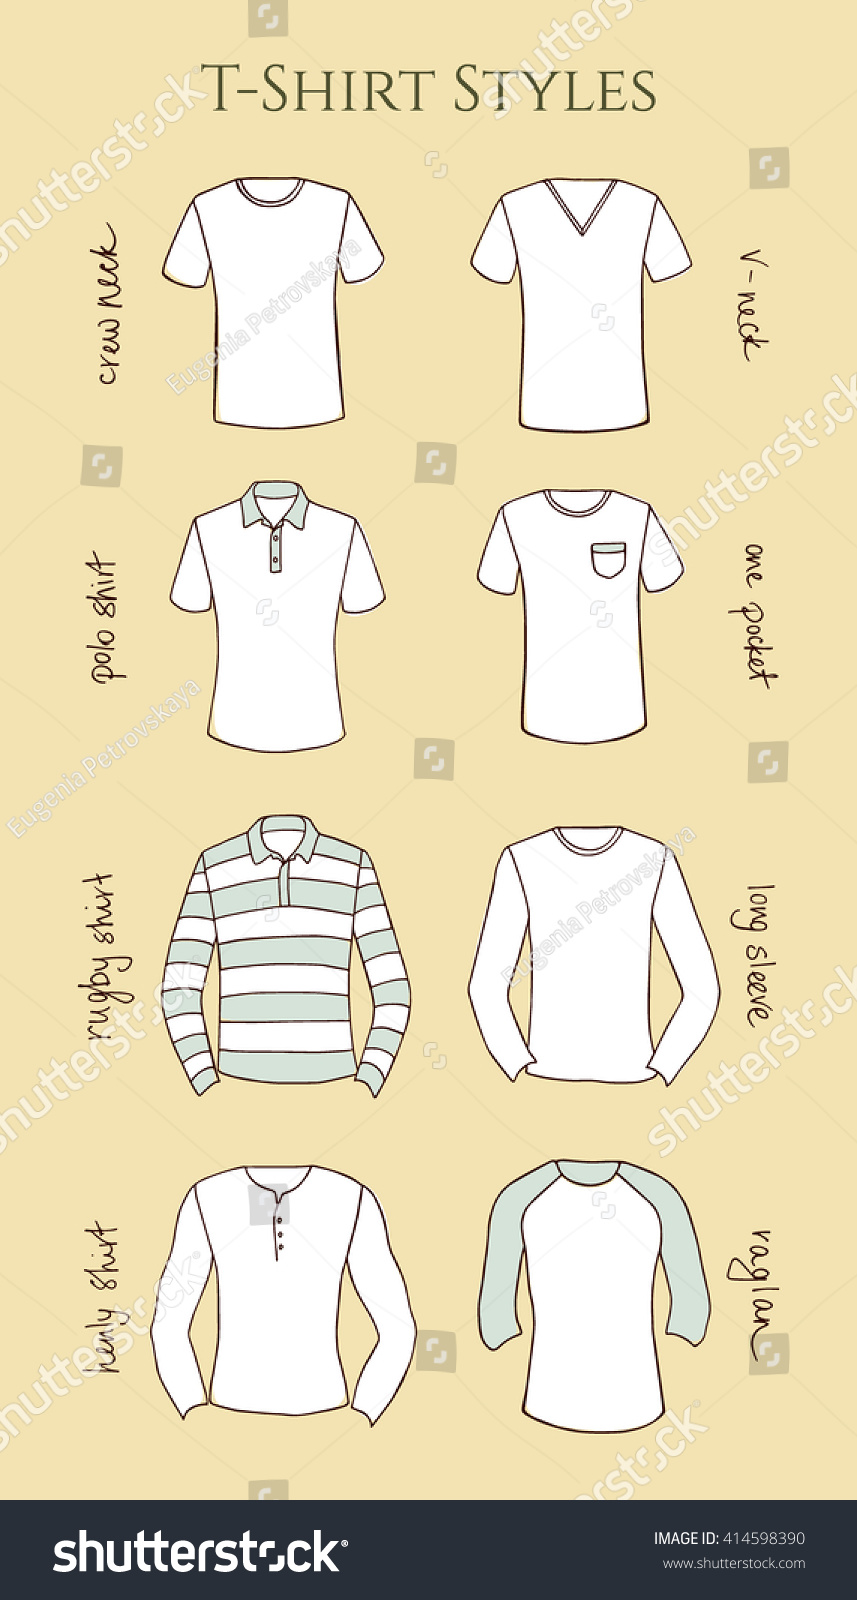 Shirt design types - Vector Visual Guide Of Male T Shirts Styles Vector Illustration Of Hand Drawn T